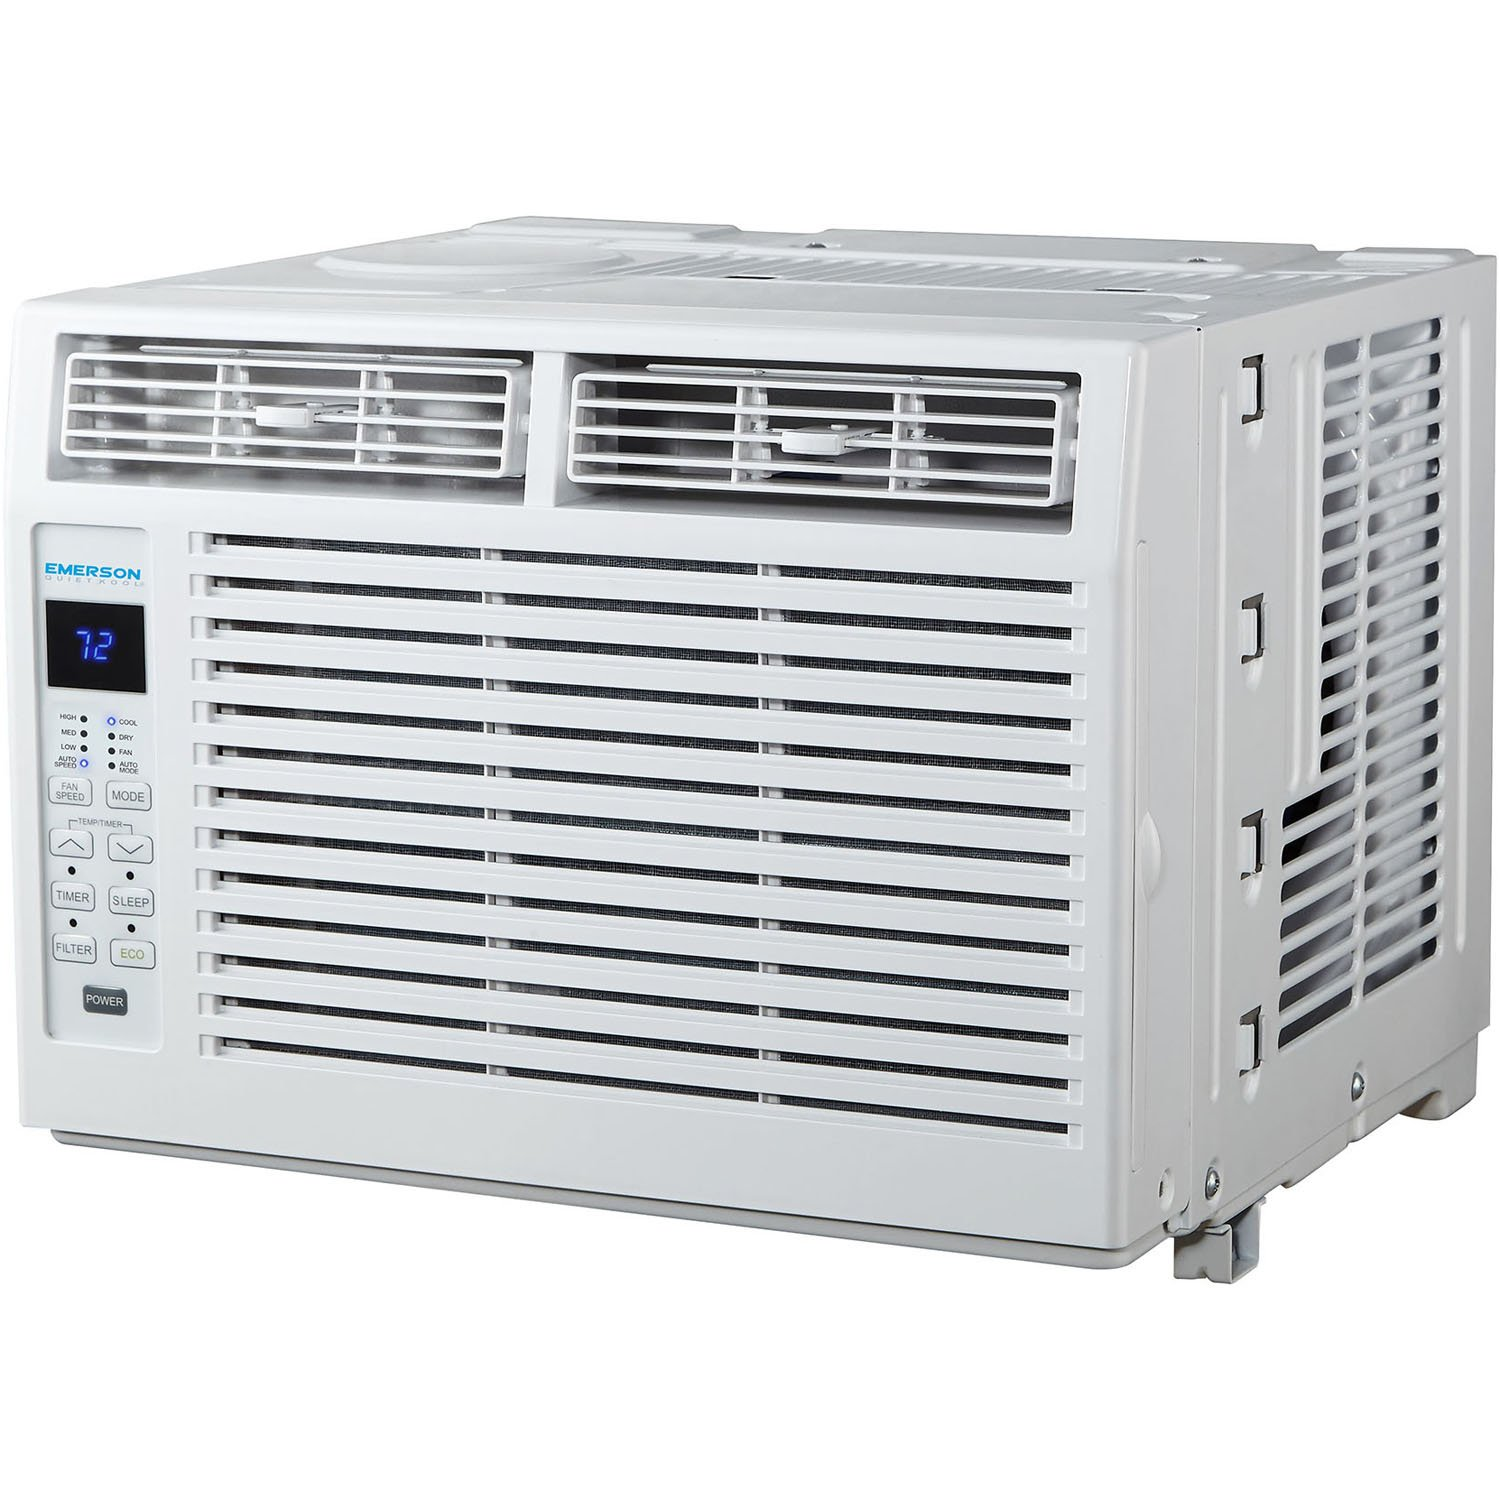 Emerson Quiet Kool EARC5RD1 5000 BTU 115V, White Window Air Conditioner with Remote Control, Standard by Emerson Quiet Kool